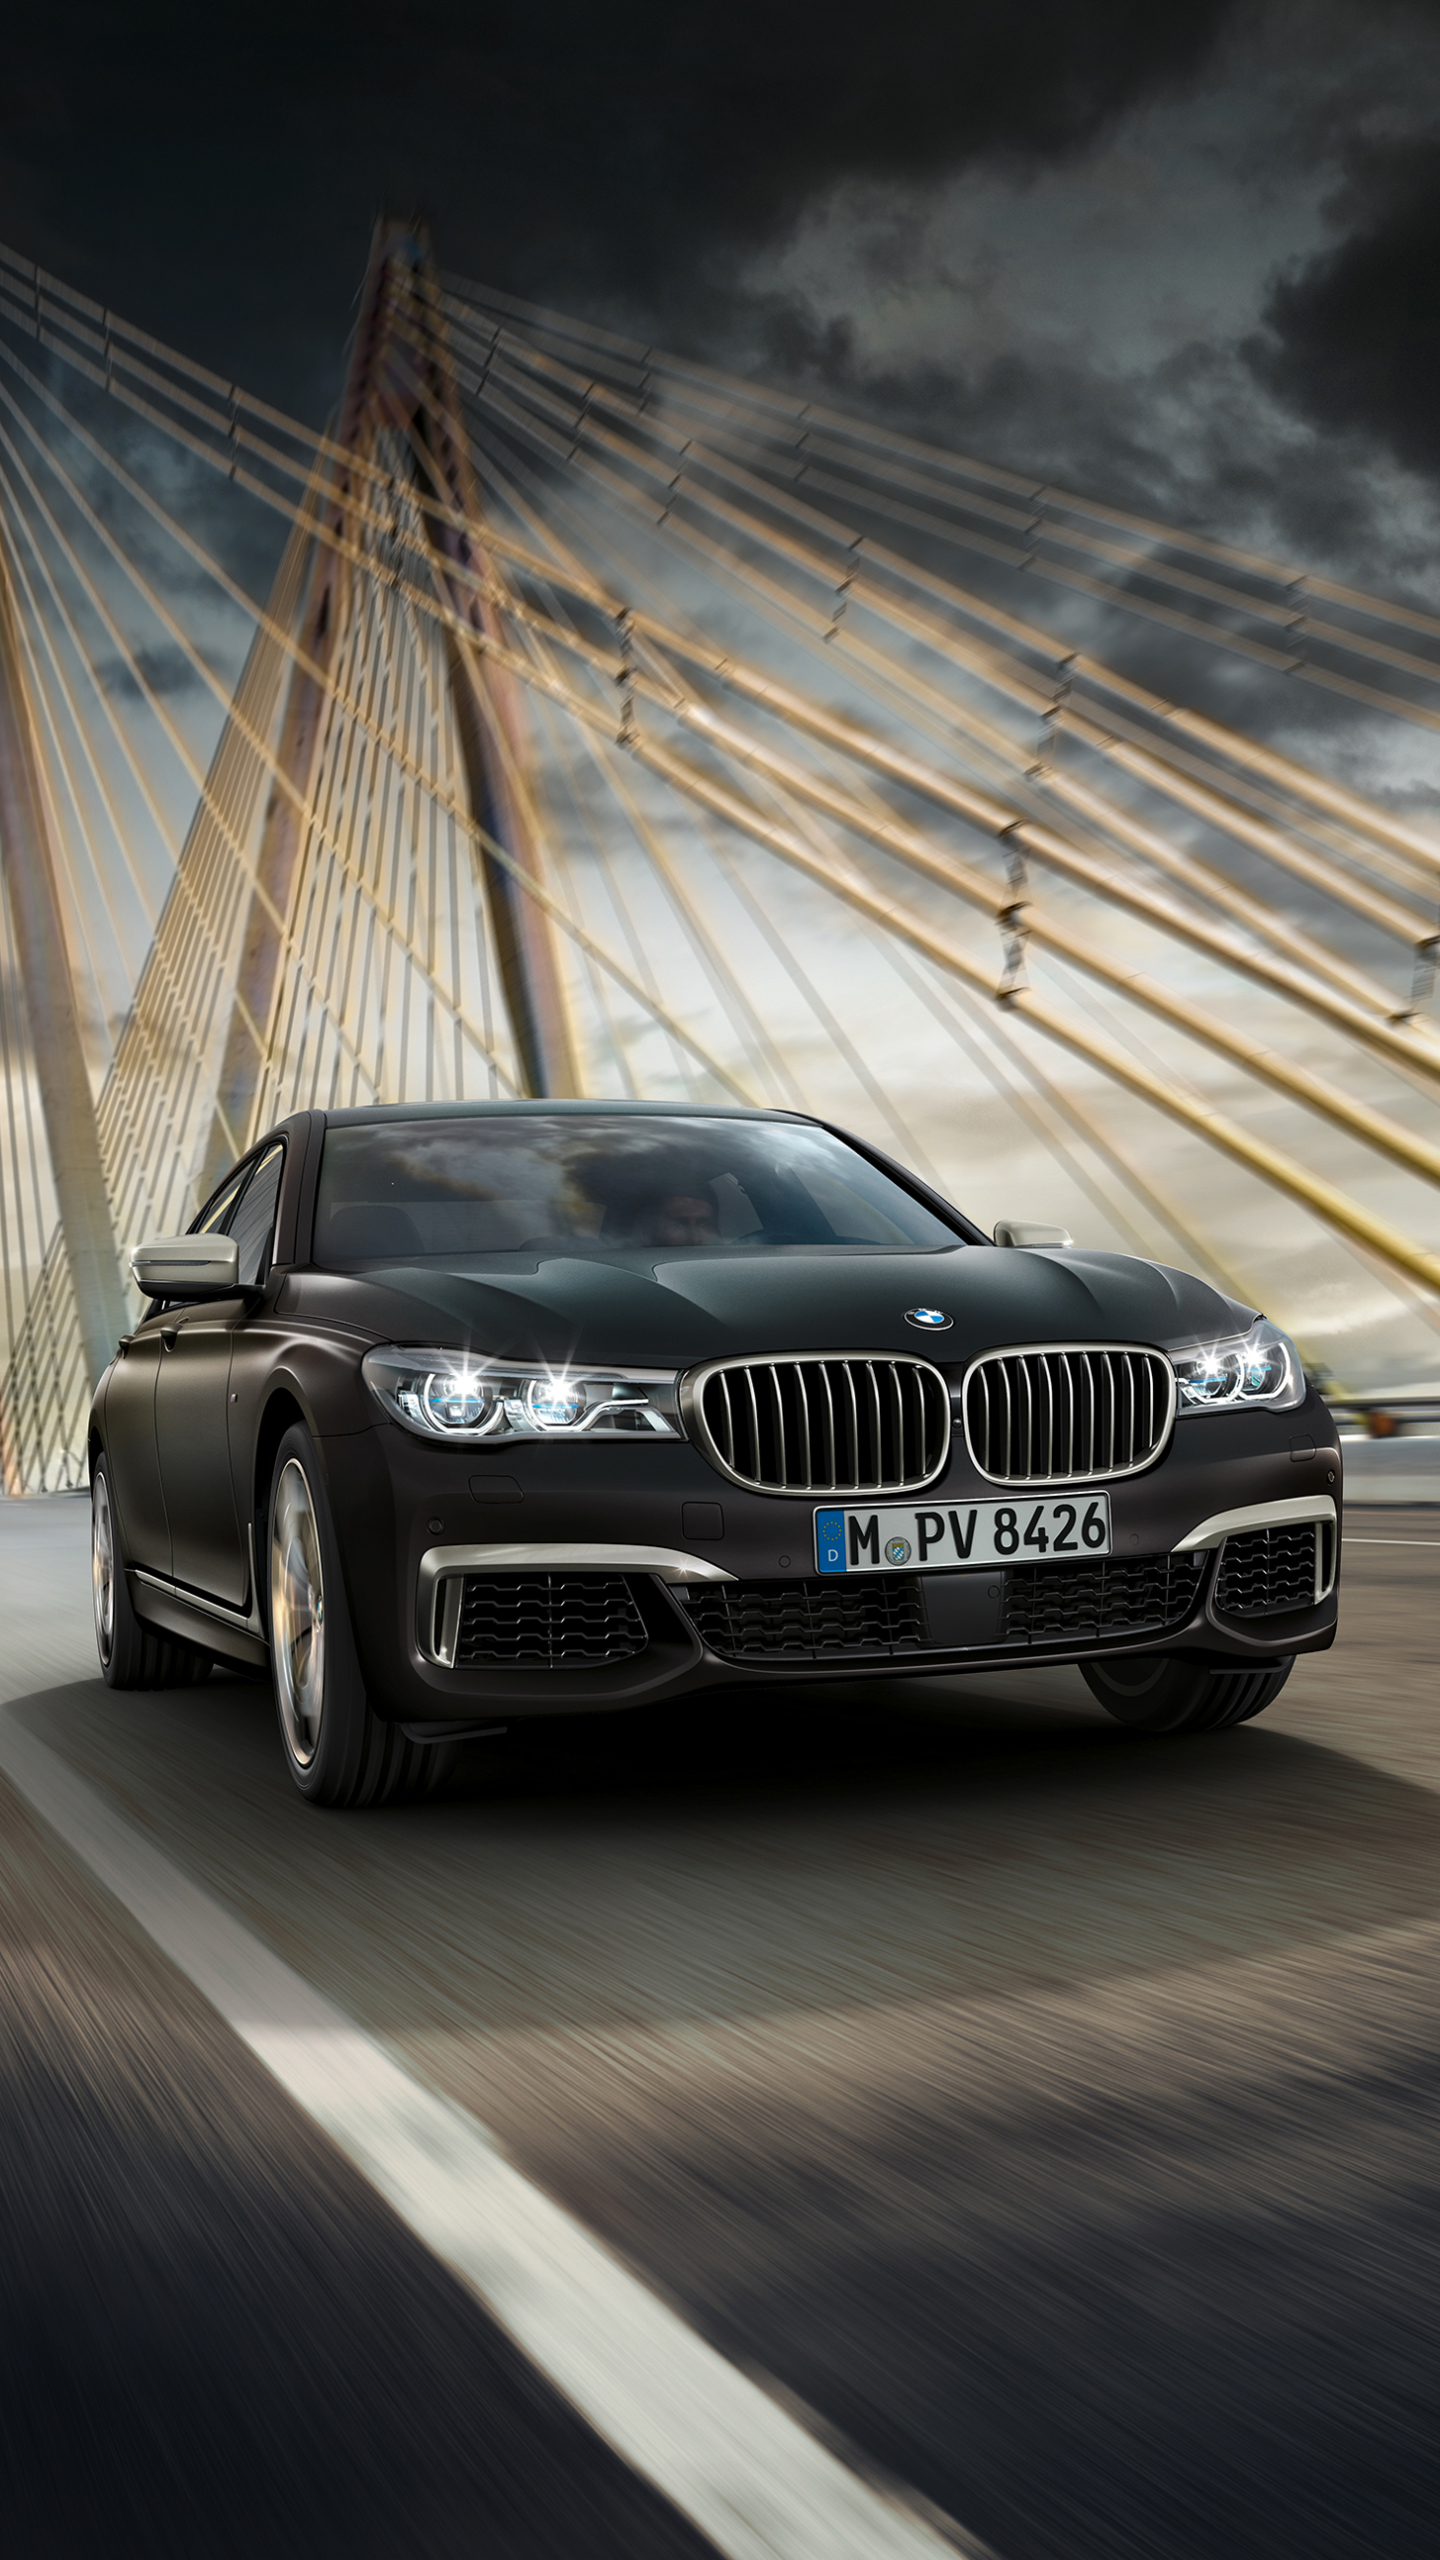 62 Bmw Apple Iphone 7 Plus 1080x1920 Wallpapers Mobile Abyss